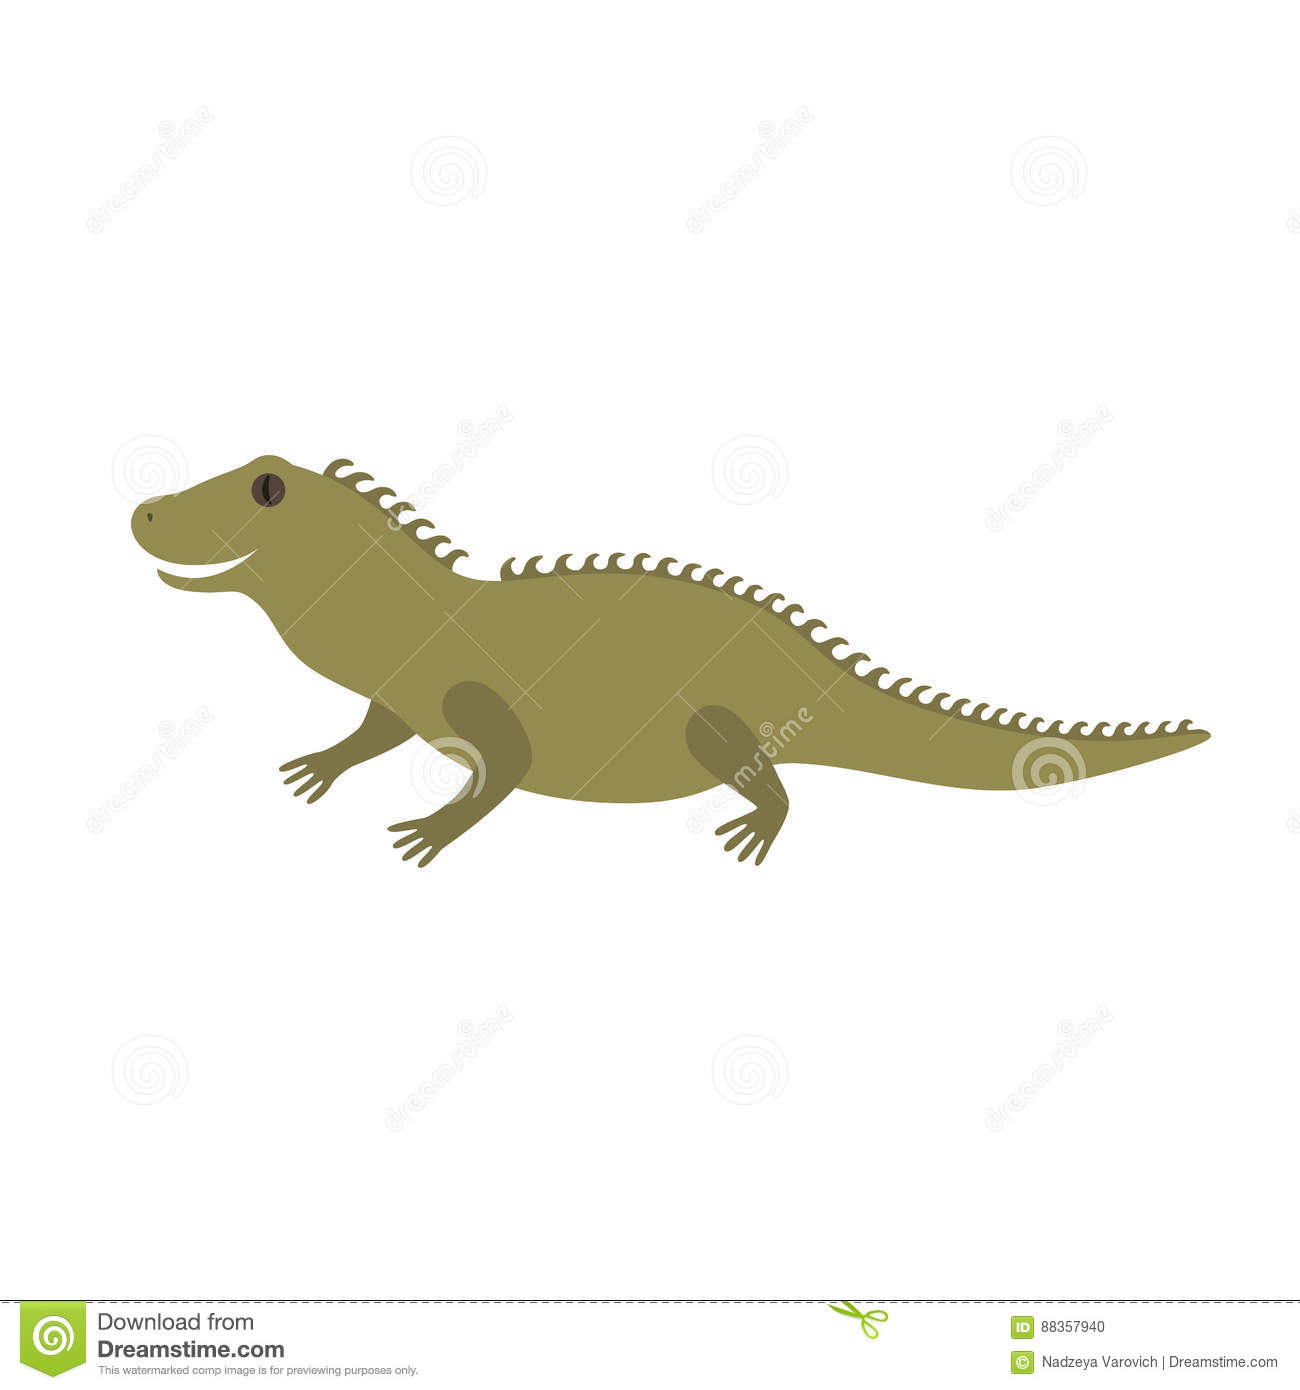 Tuatara of New Zealand